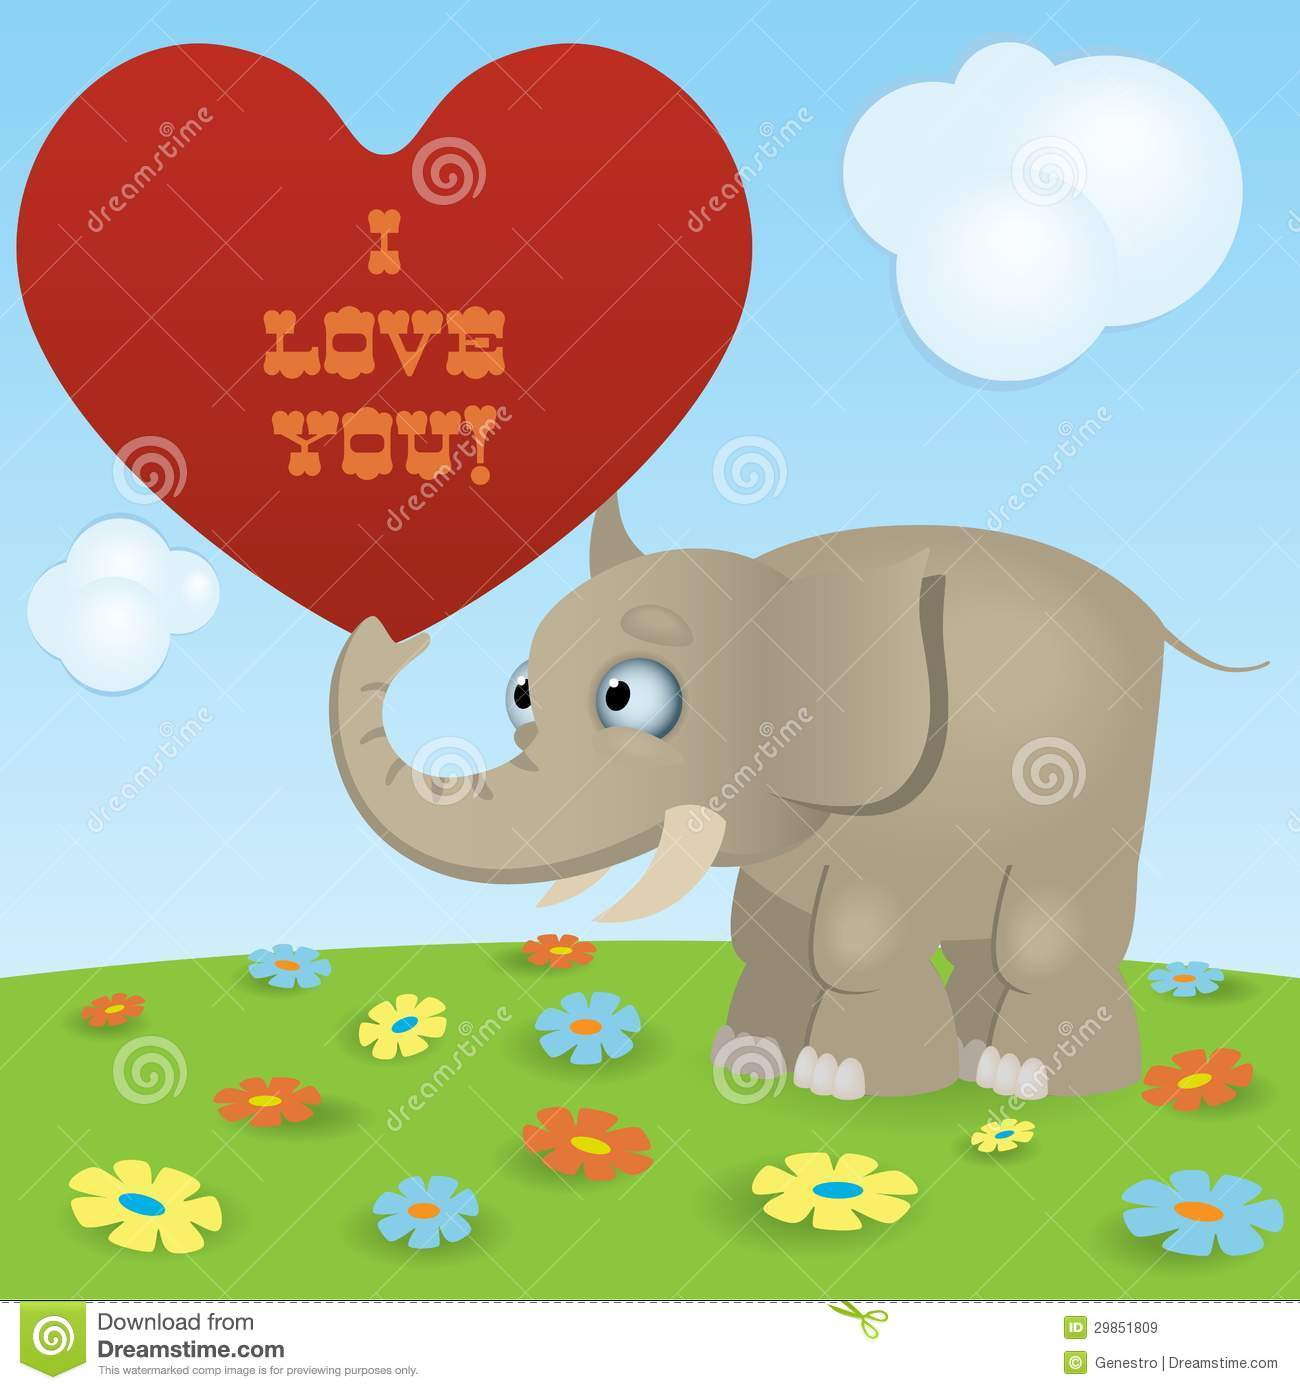 Cute cartoon elephant with a red paper heart and sign -I Love You.